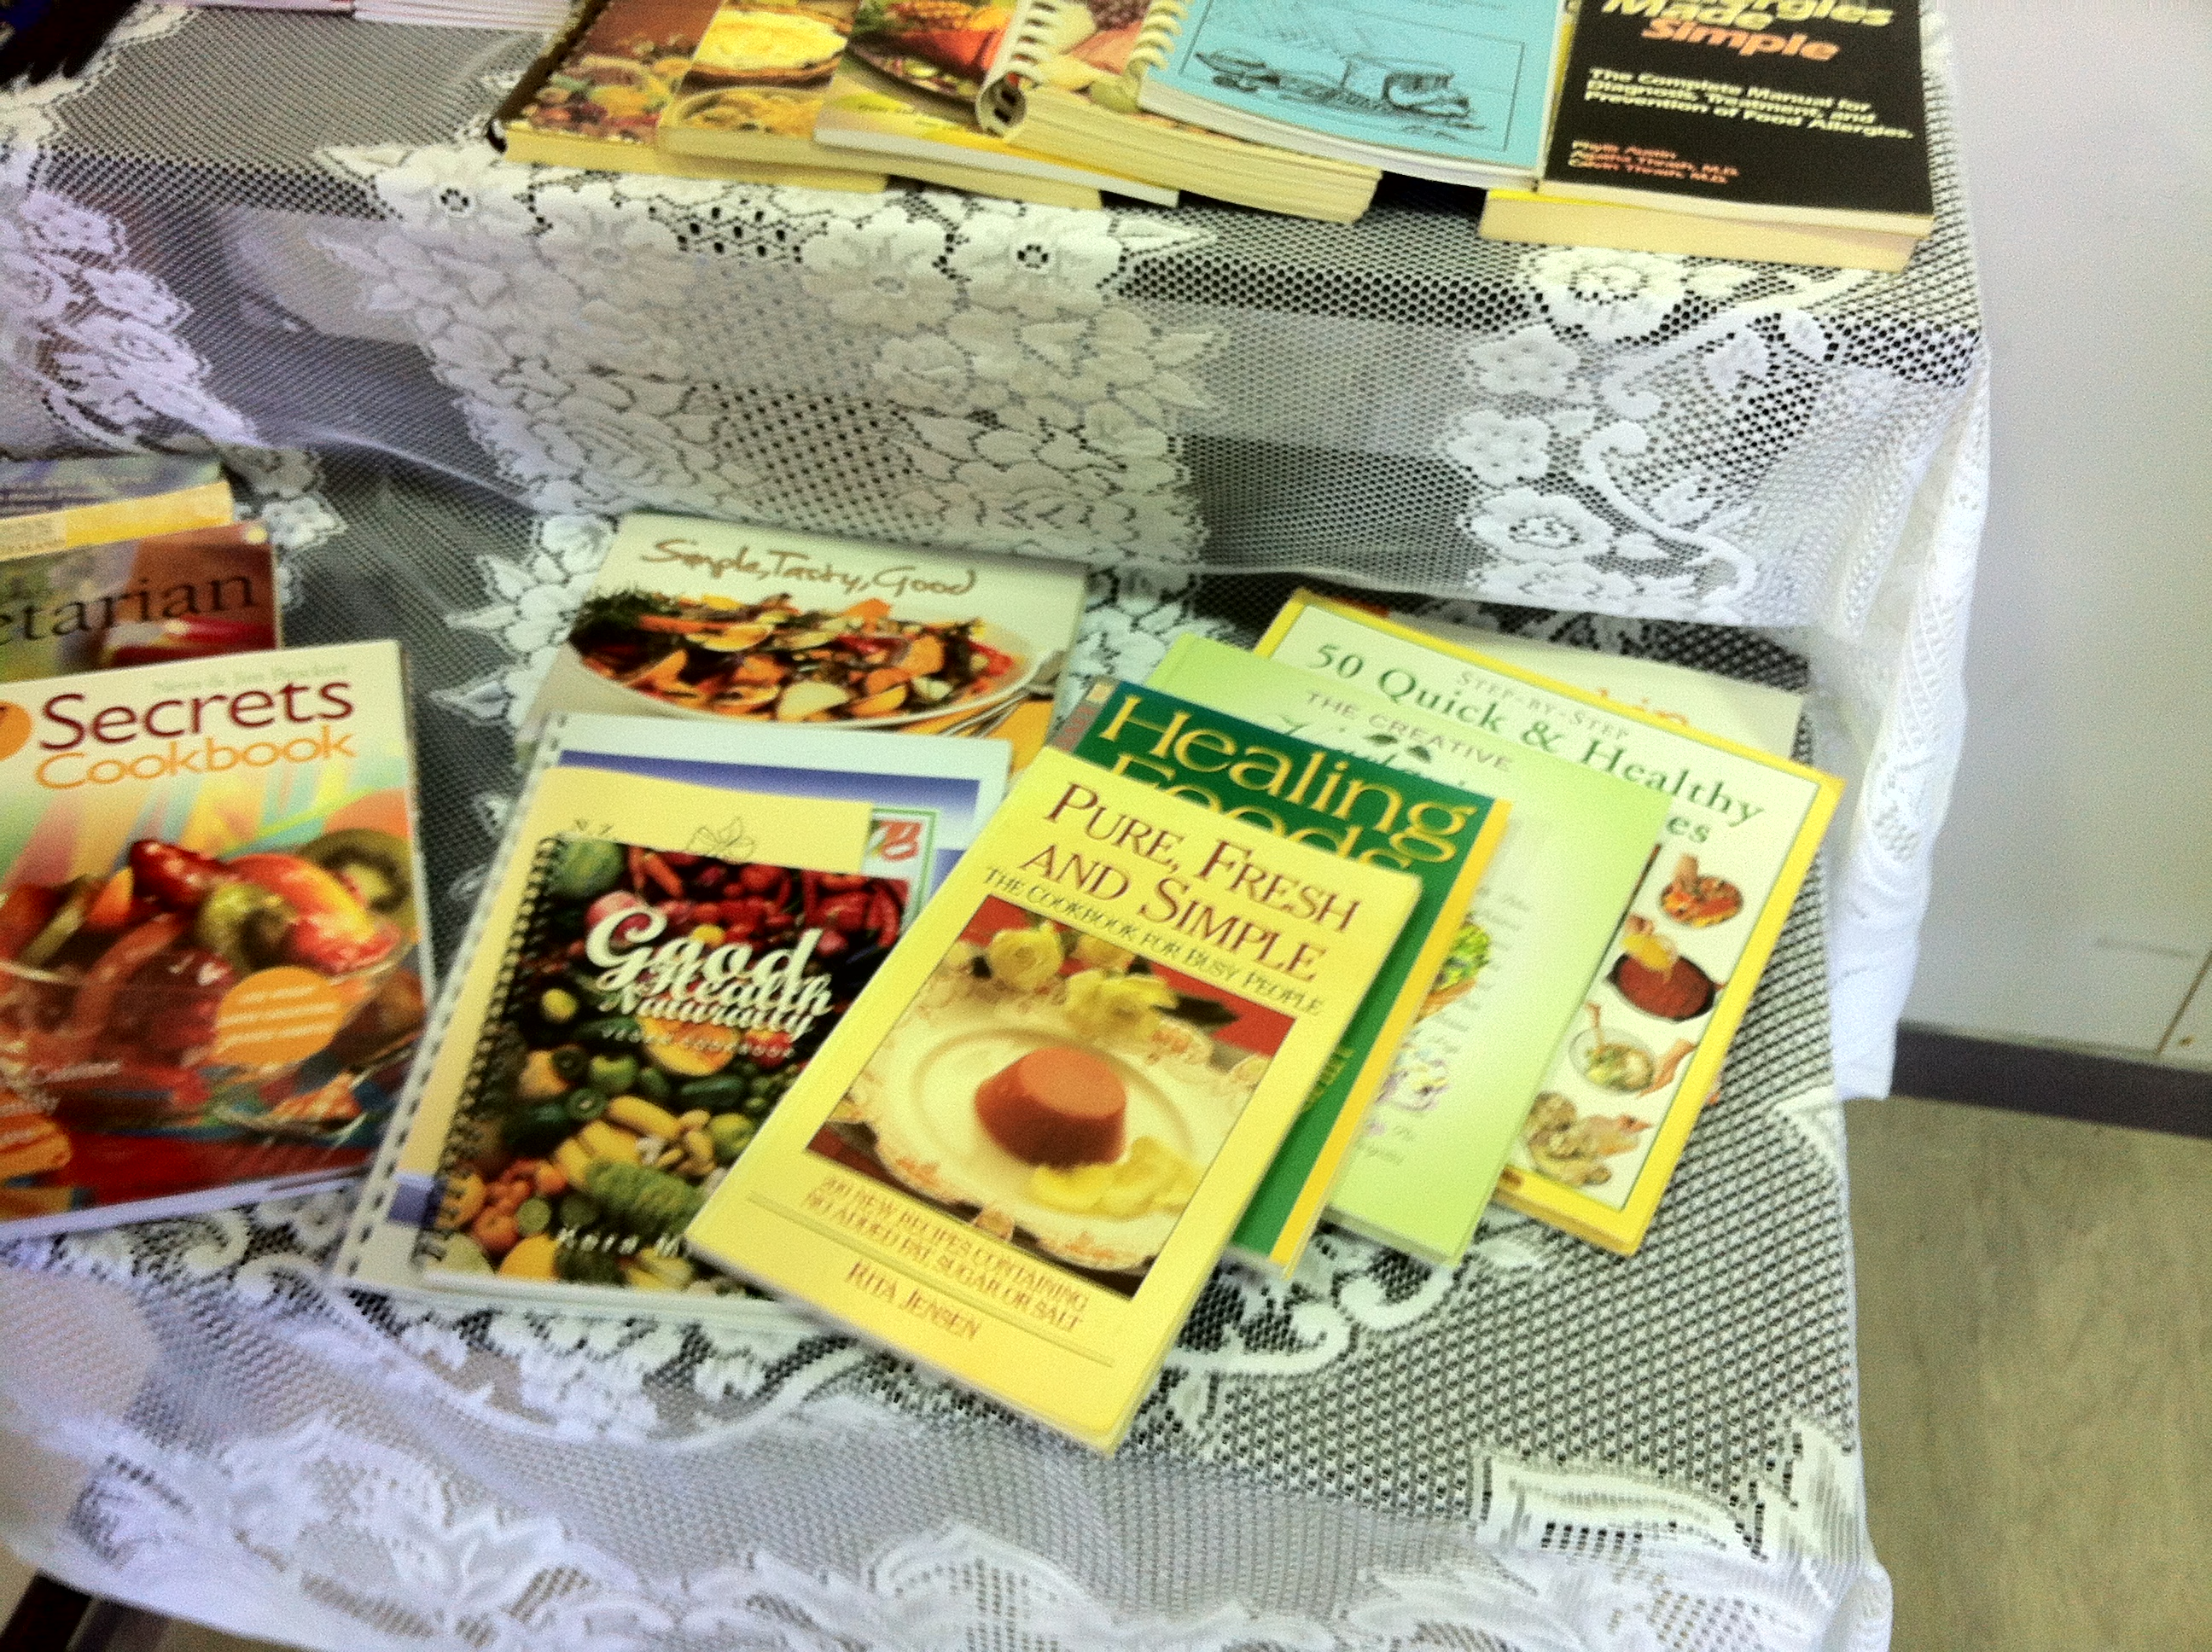 Here are some of suzannes books about vegan cooking